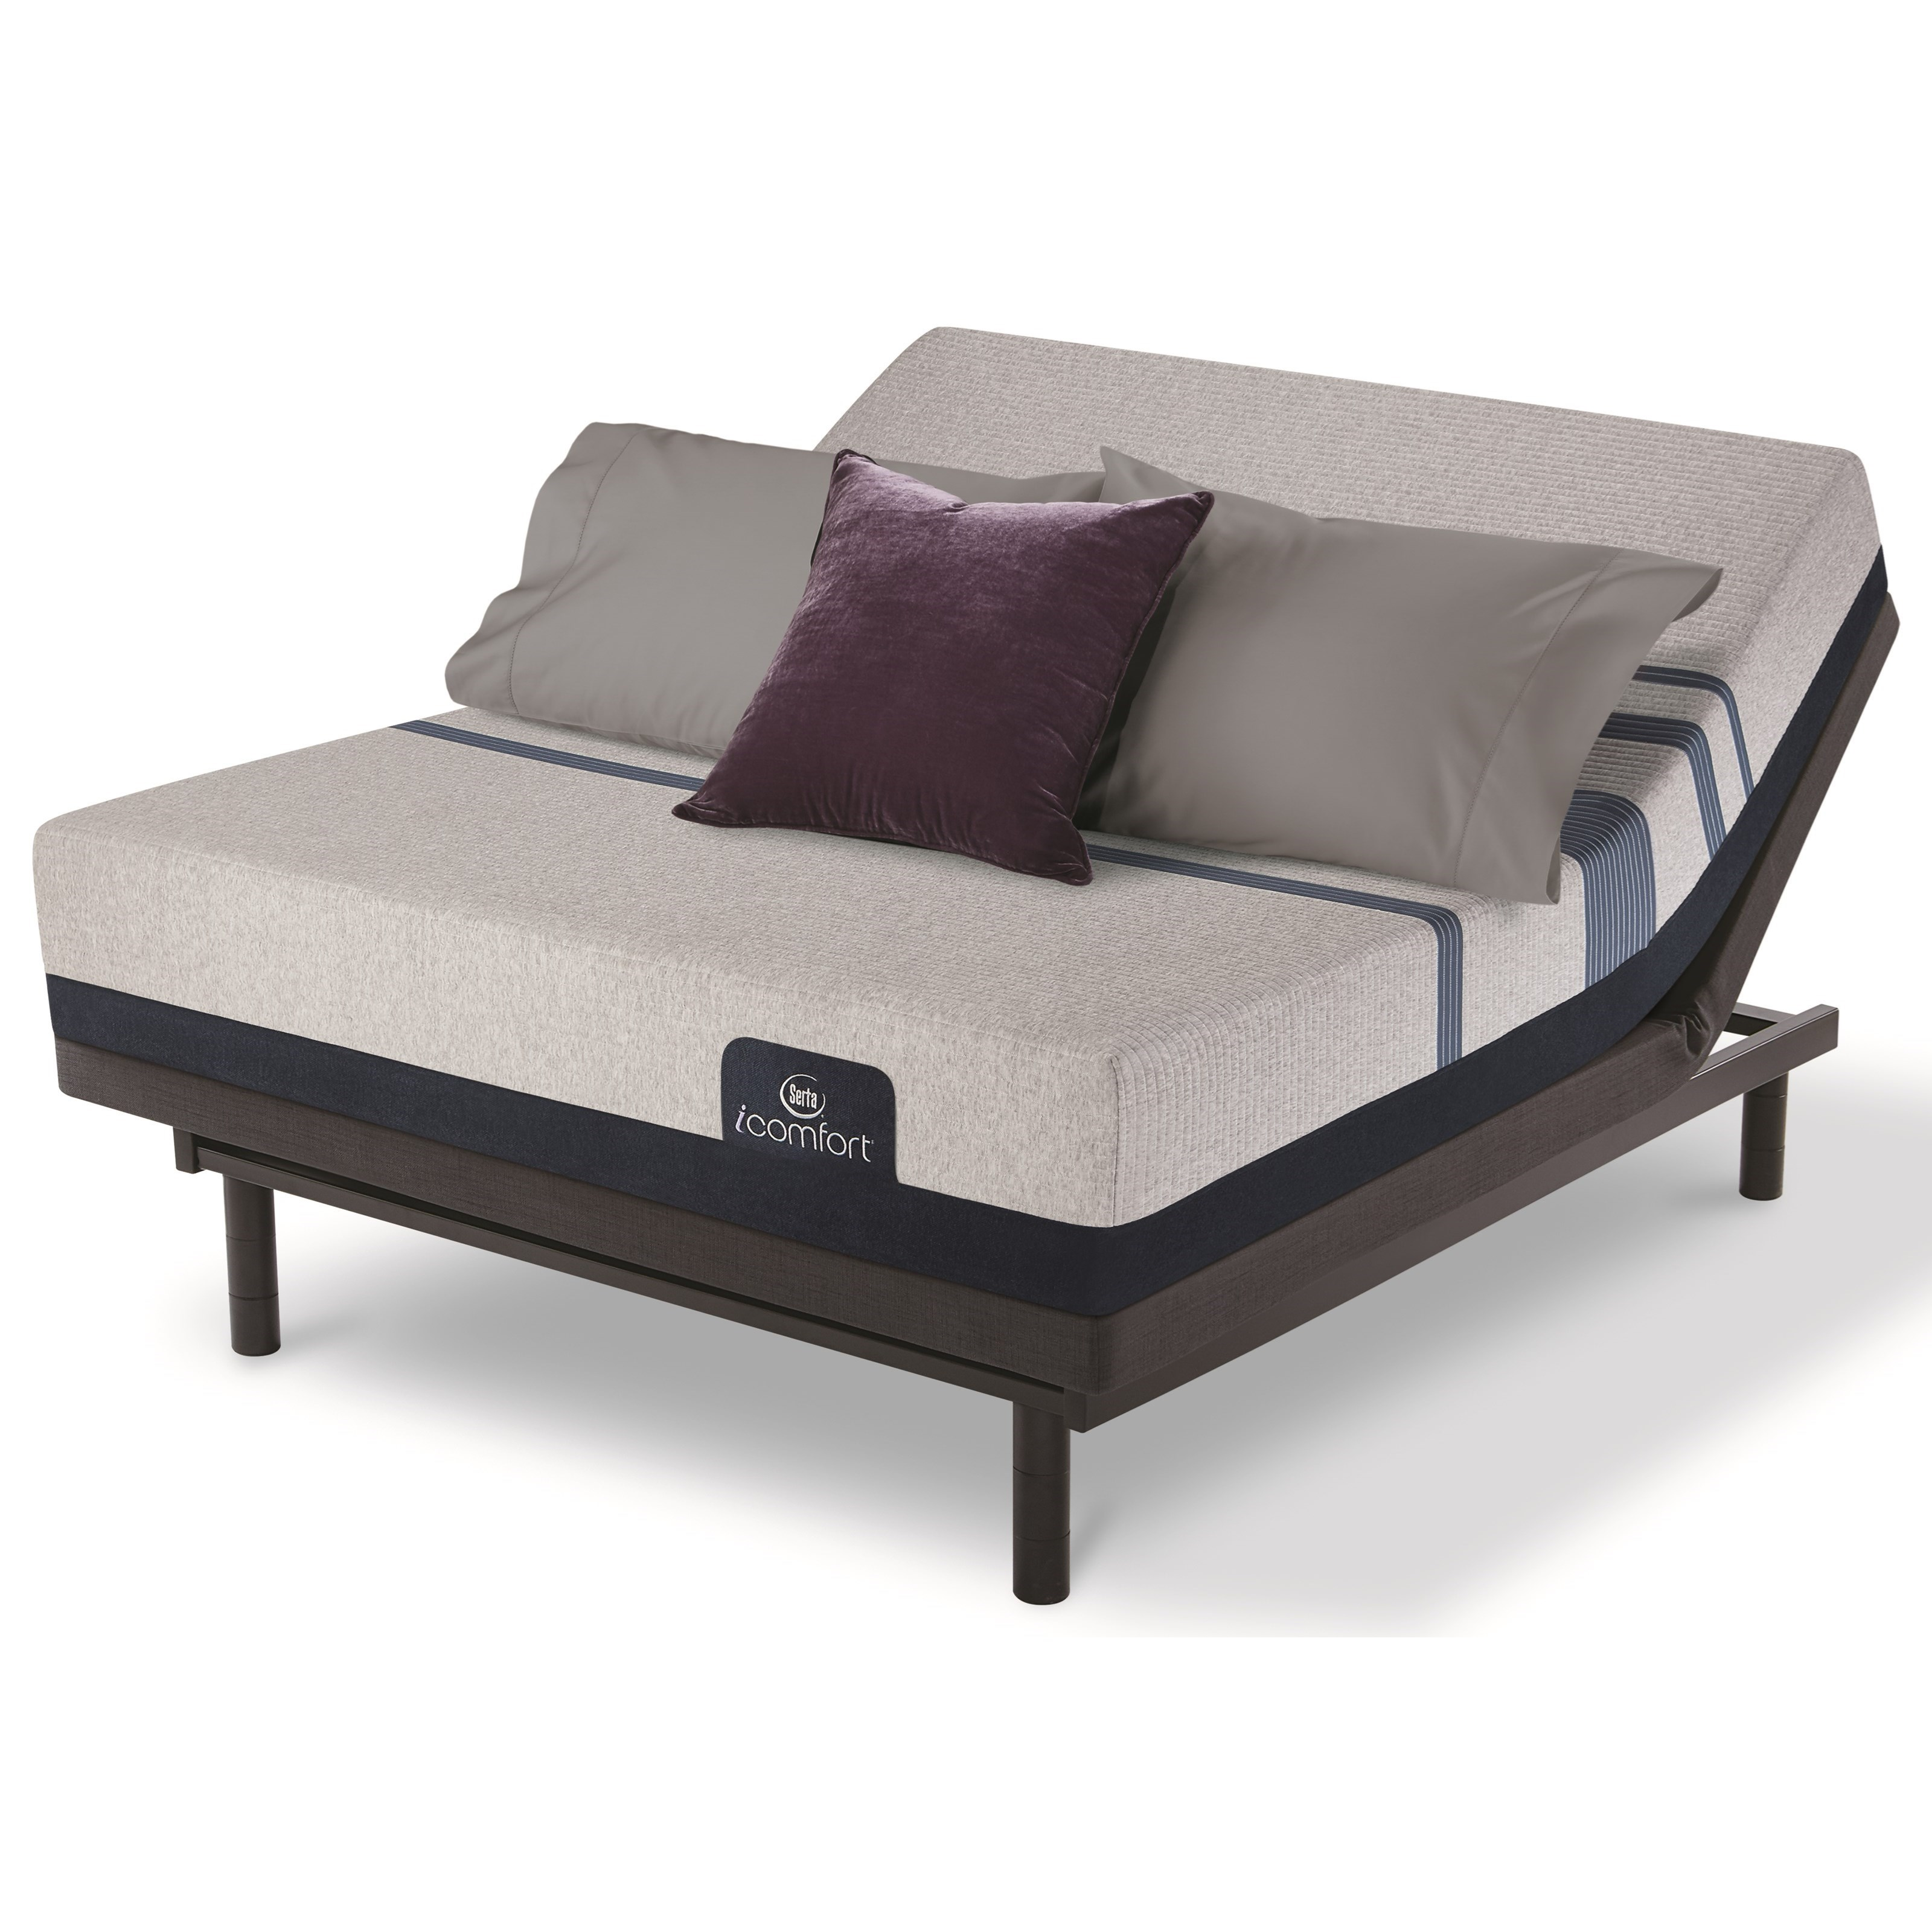 iComfort Blue 300 Firm Twin XL Firm Gel Memory Foam Adjustable Set by Serta at Michael Alan Furniture & Design